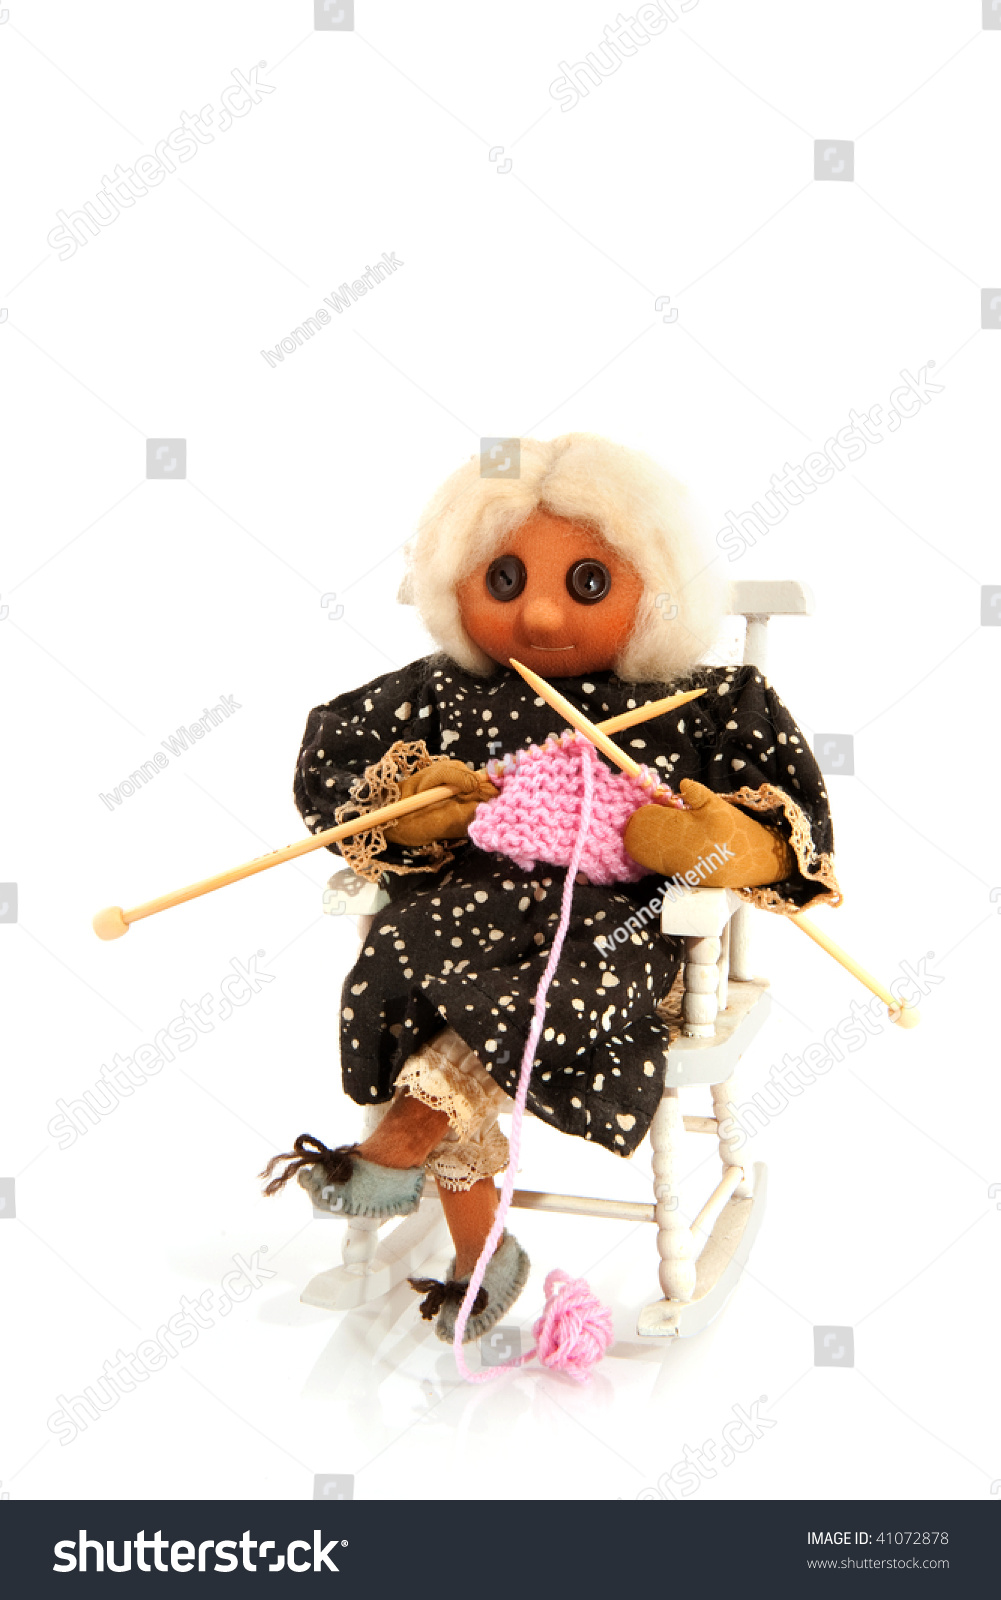 Knitting Grandma Sitting In A Rocking Chair Stock Photo